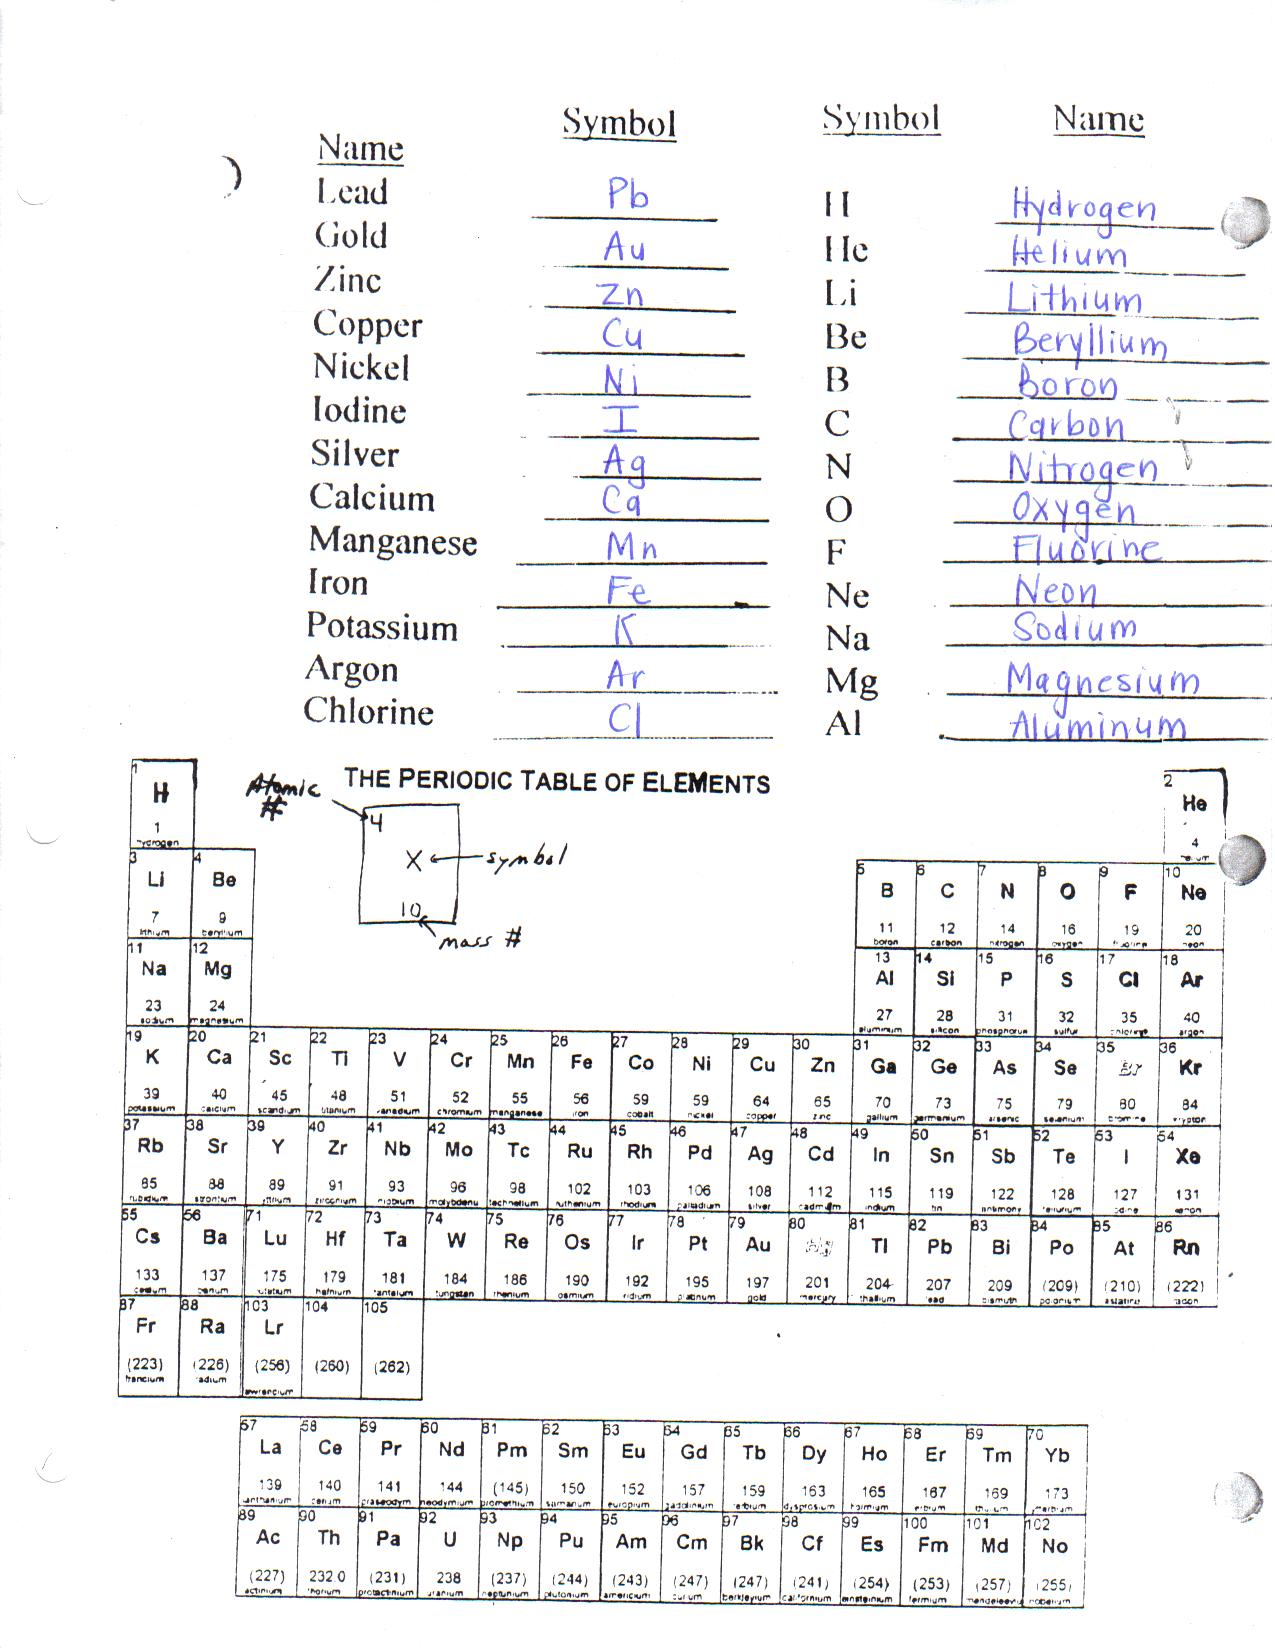 Periodic Table Of Elements With Names And Symbols Quiz